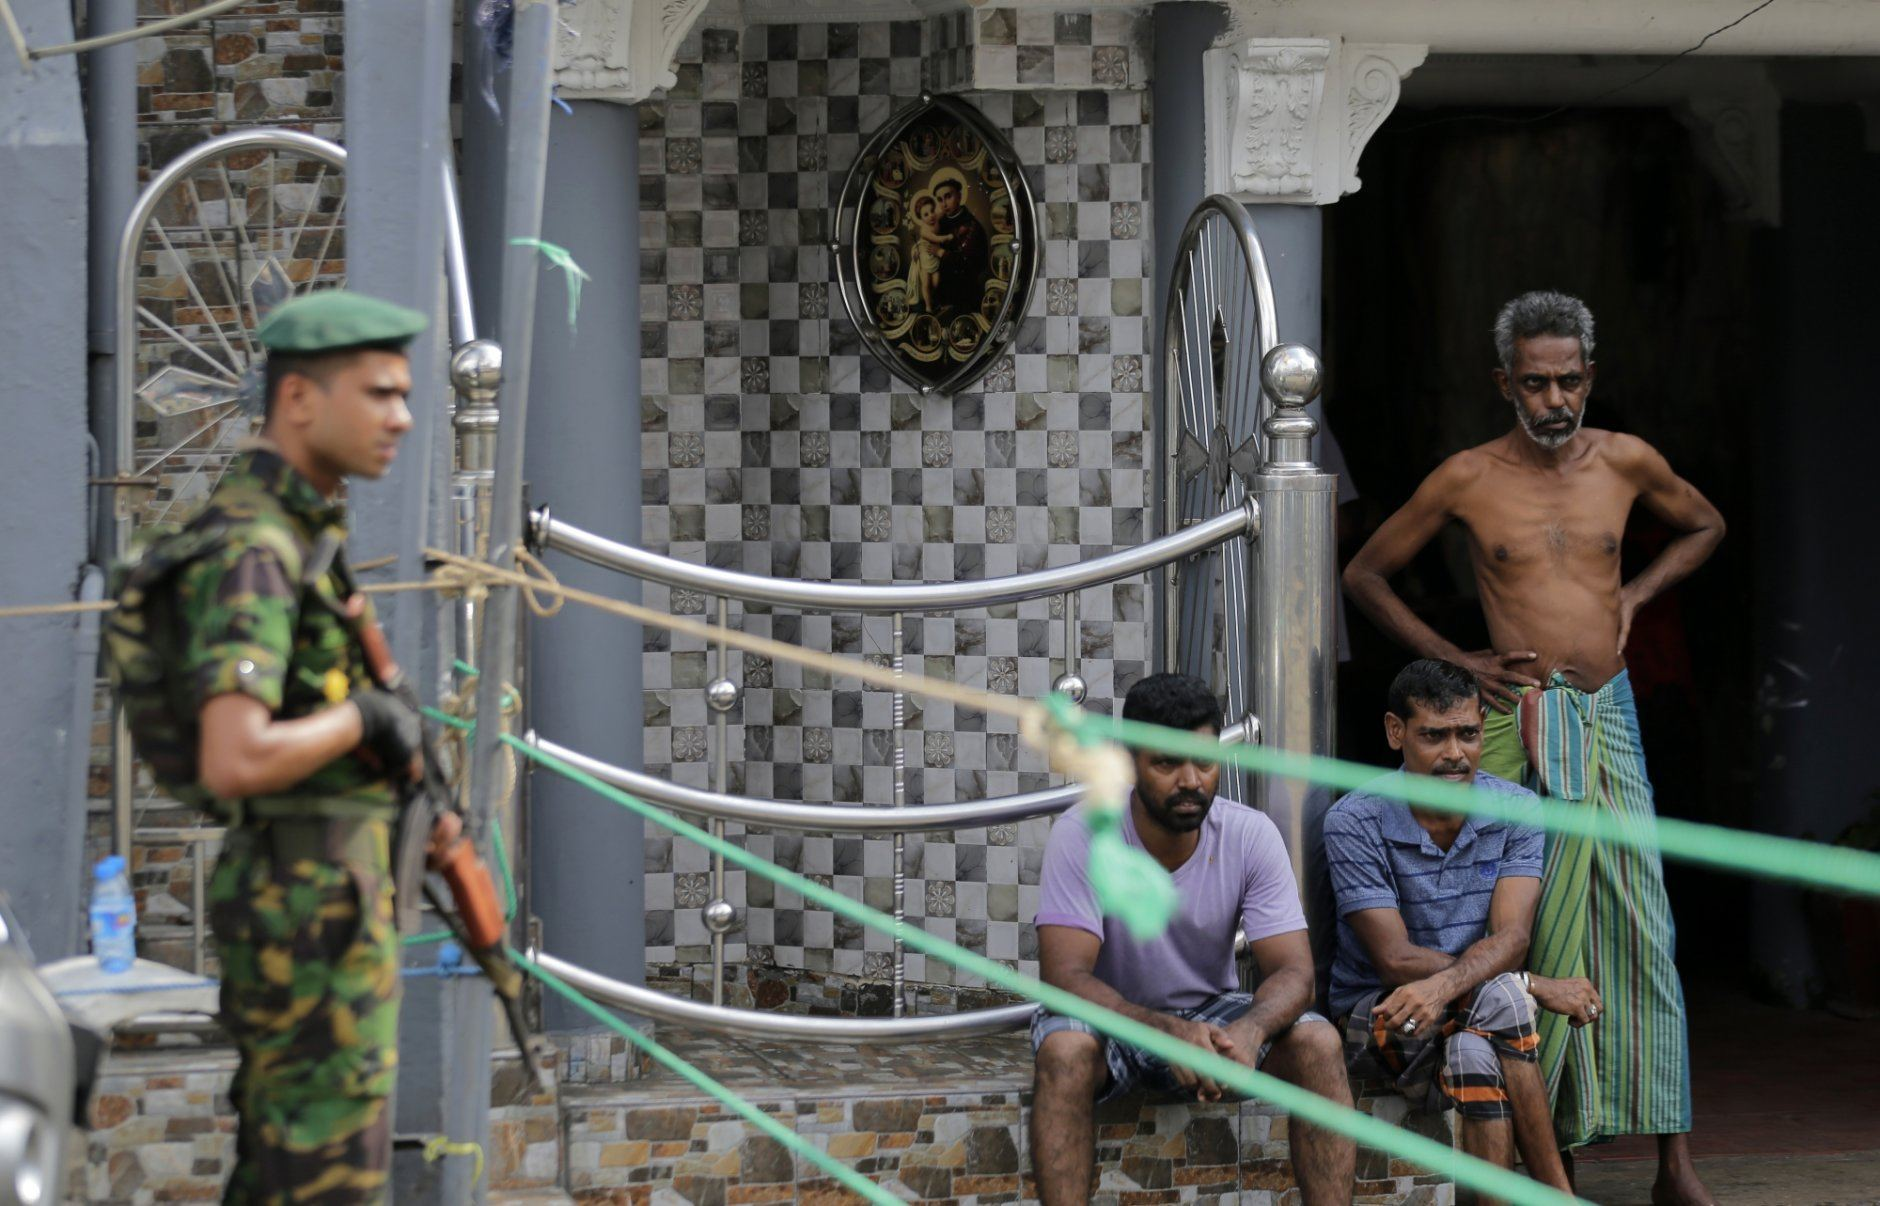 A Sri Lankan police commando secure the area of the exploded St. Anthony's Church on Easter Sunday attacks as people wait next to a small roadside in Colombo, Sri Lanka, Sunday, April 28, 2019. Sri Lanka's Catholics on Sunday awoke preparing to celebrate Mass in their homes by a televised broadcast as churches across the island shut over fears of militant attacks, a week after the Islamic State-claimed Easter suicide bombings. (AP Photo/Eranga Jayawardena)